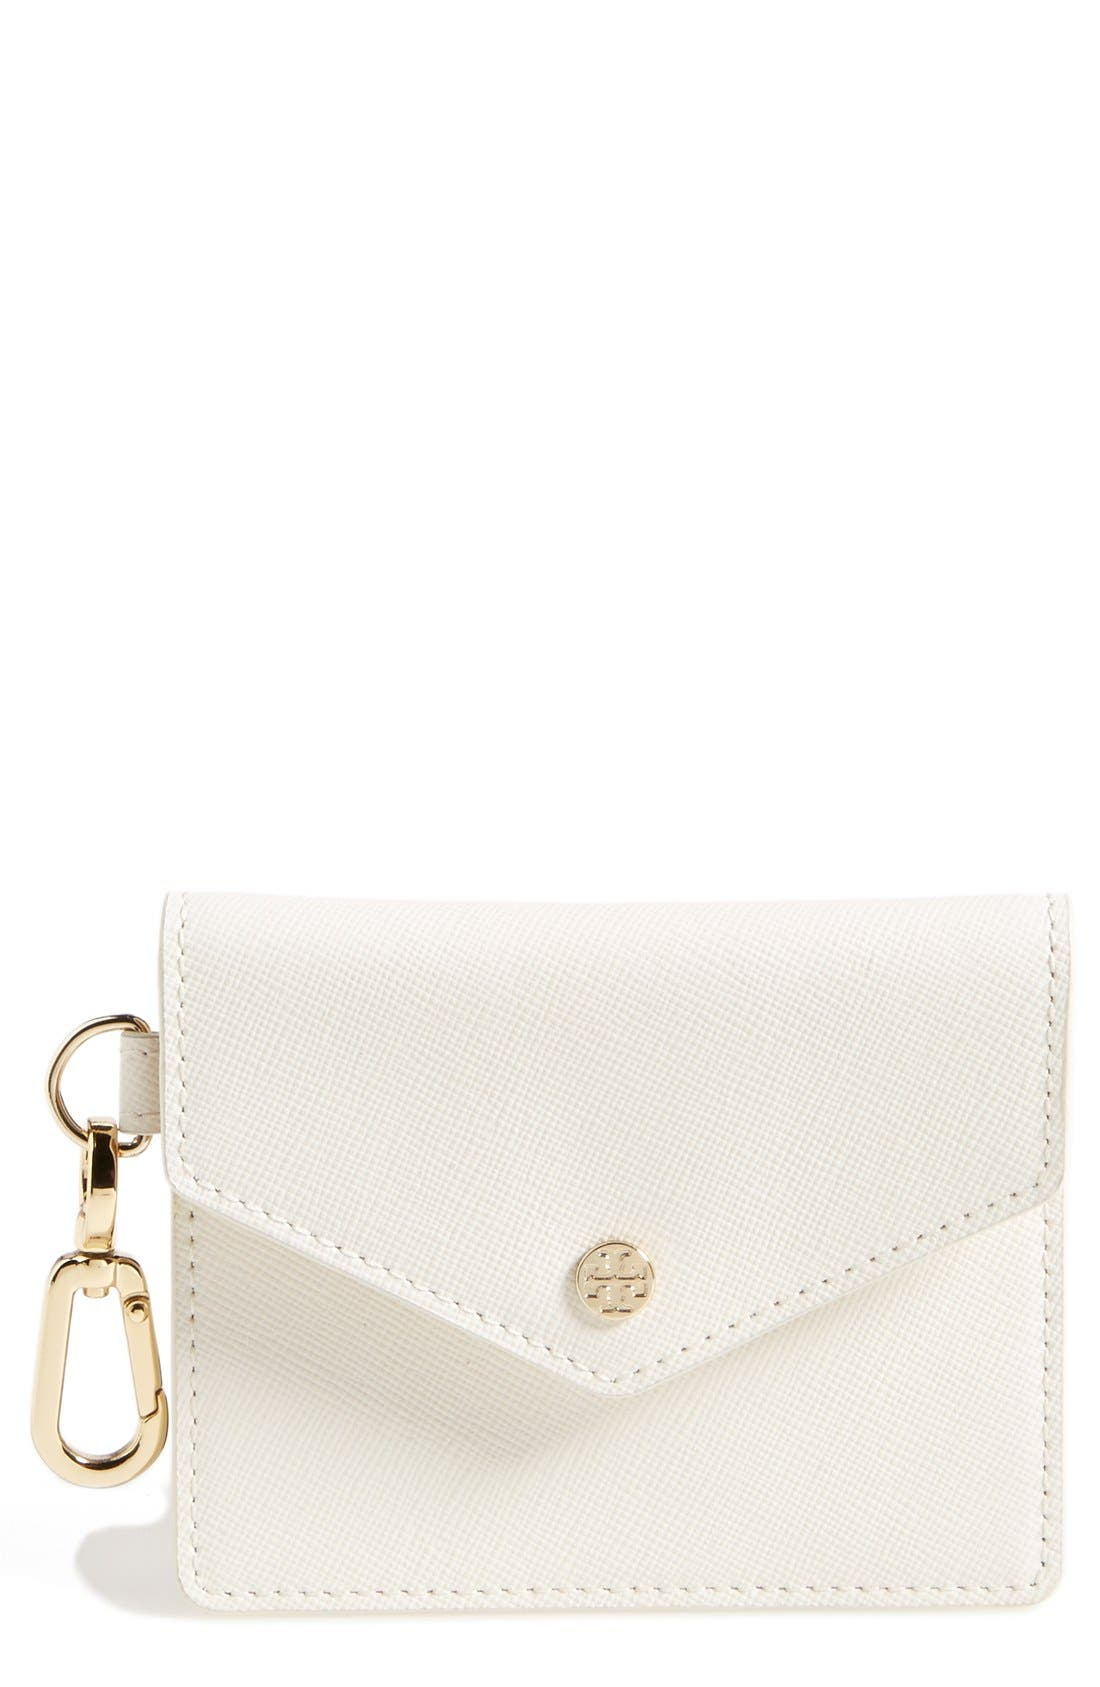 Alternate Image 1 Selected - Tory Burch Saffiano Leather Card Case